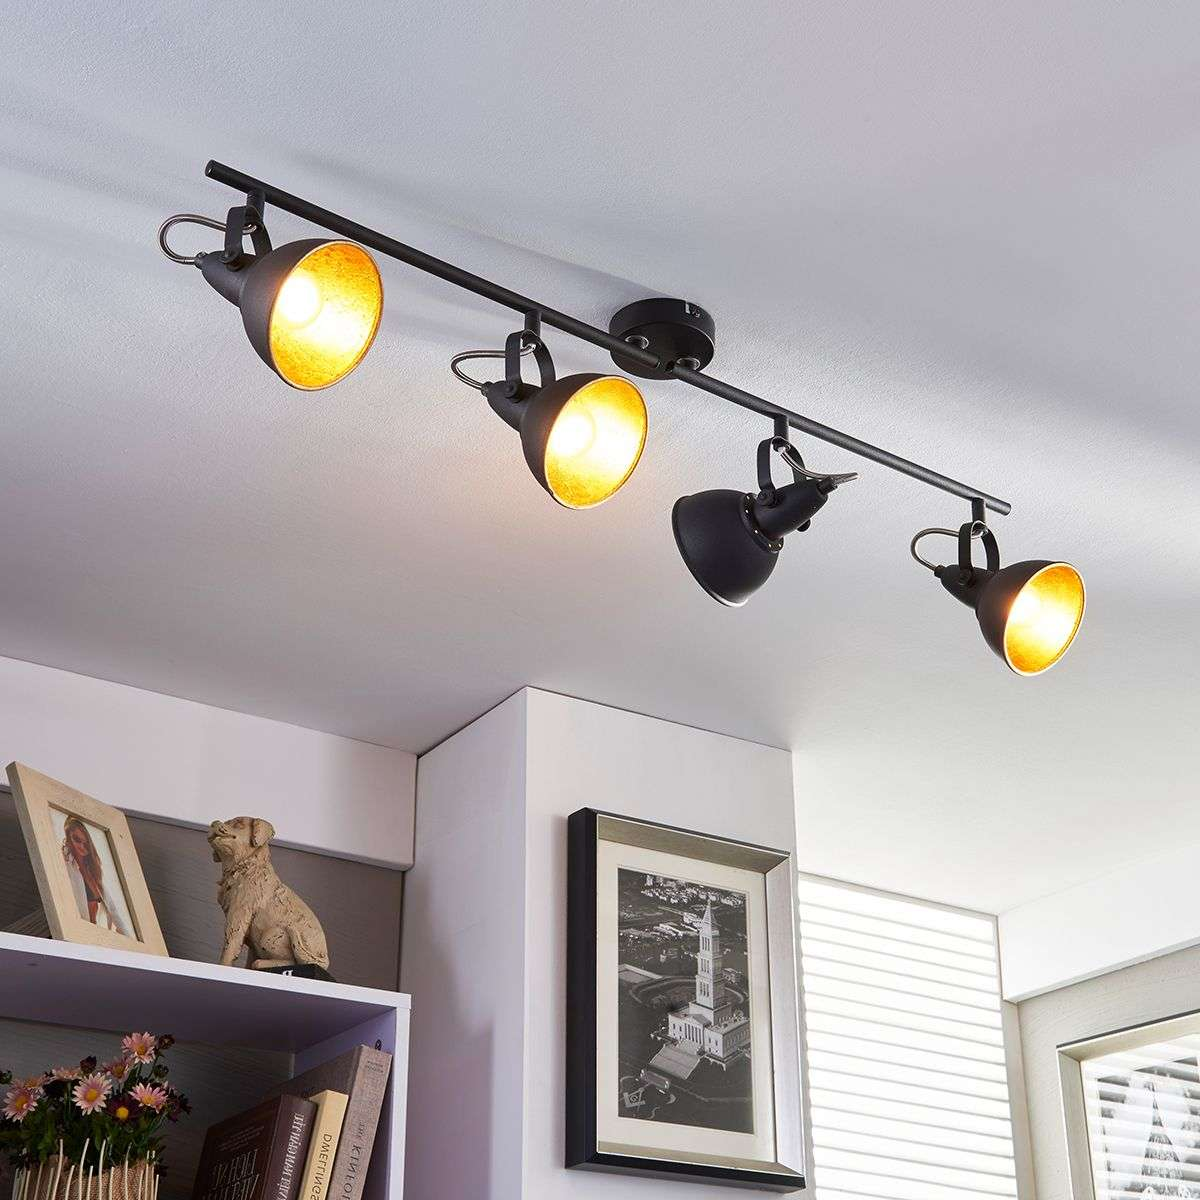 Black And Golden Kitchen Spotlight Julin, 4 Bulbs